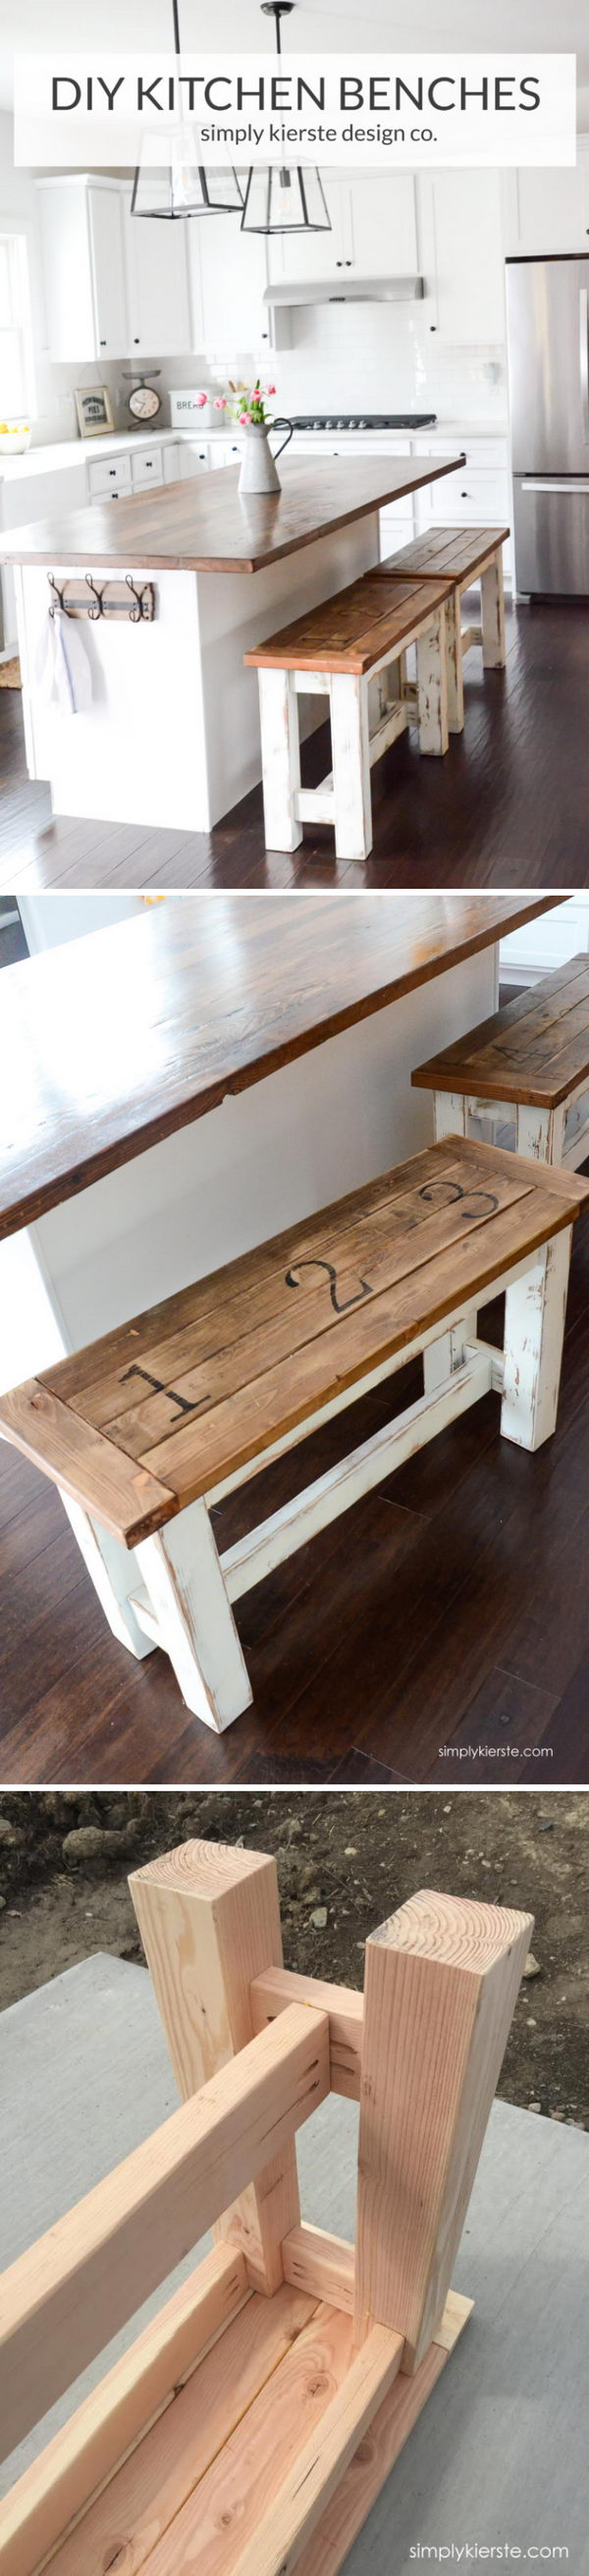 DIY Kitchen Benches.